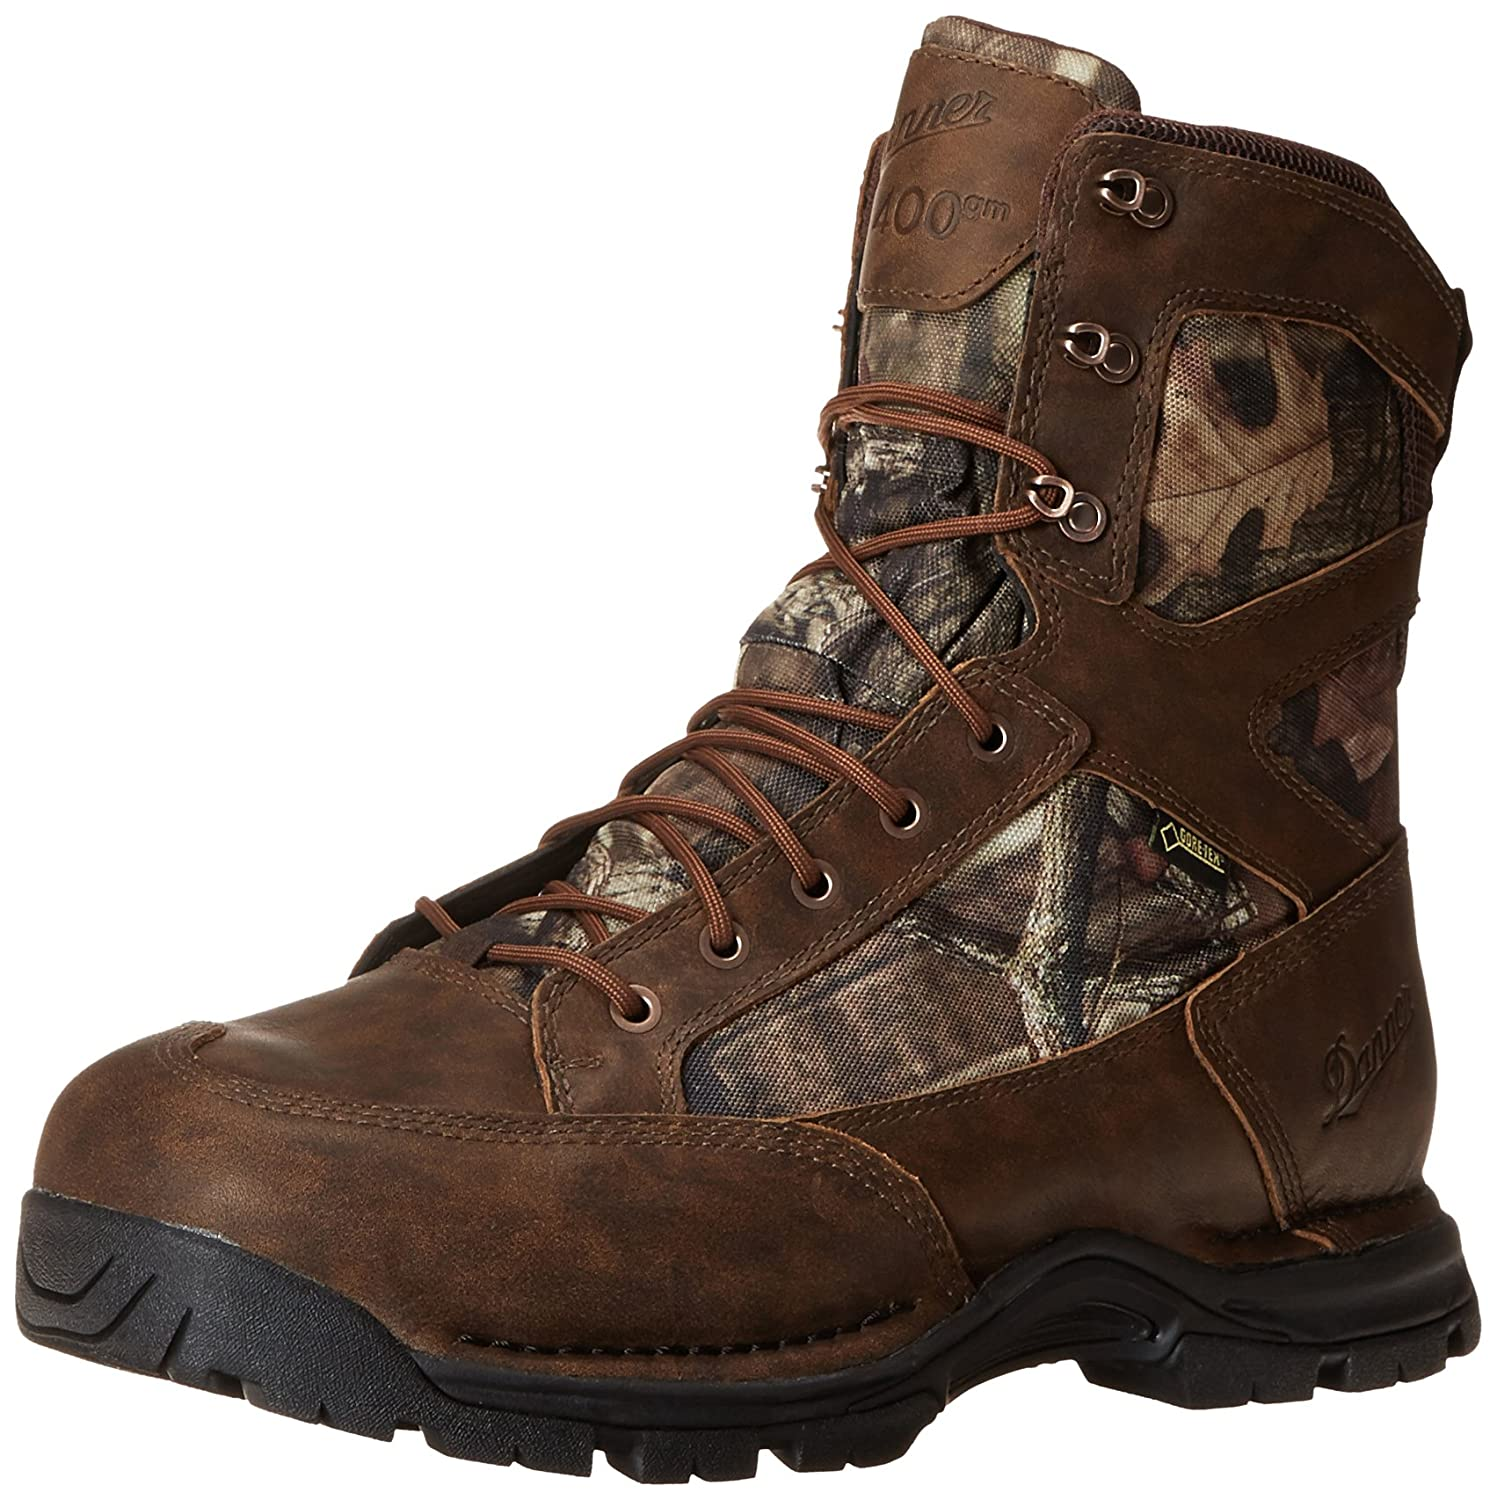 Mossy Oak Break Up Infinity Brown Danner Men's Pronghorn 8 Inch GTX 400G Hunting Boot